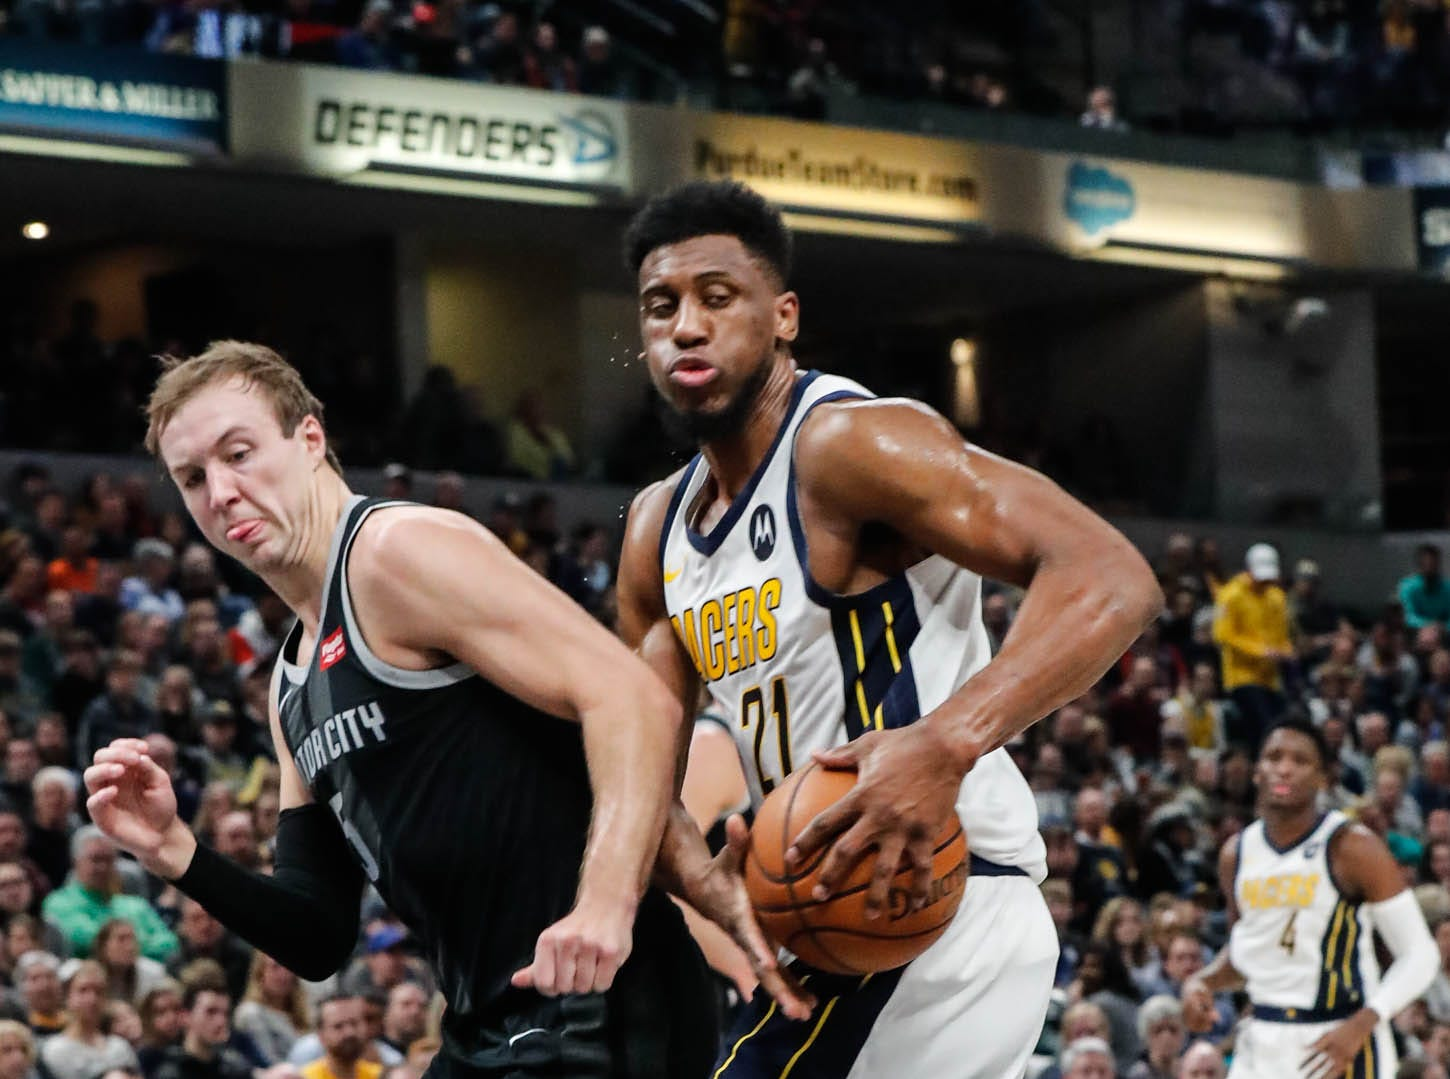 Indiana Pacer's forward Thaddeus Young (21), and Detroit Piston's guard Luke Kennard (5), battle for the ball during a game between the Indiana Pacers and the Detroit Pistons at at Bankers Life Fieldhouse in Indianapolis on Friday, Dec. 28, 2018.